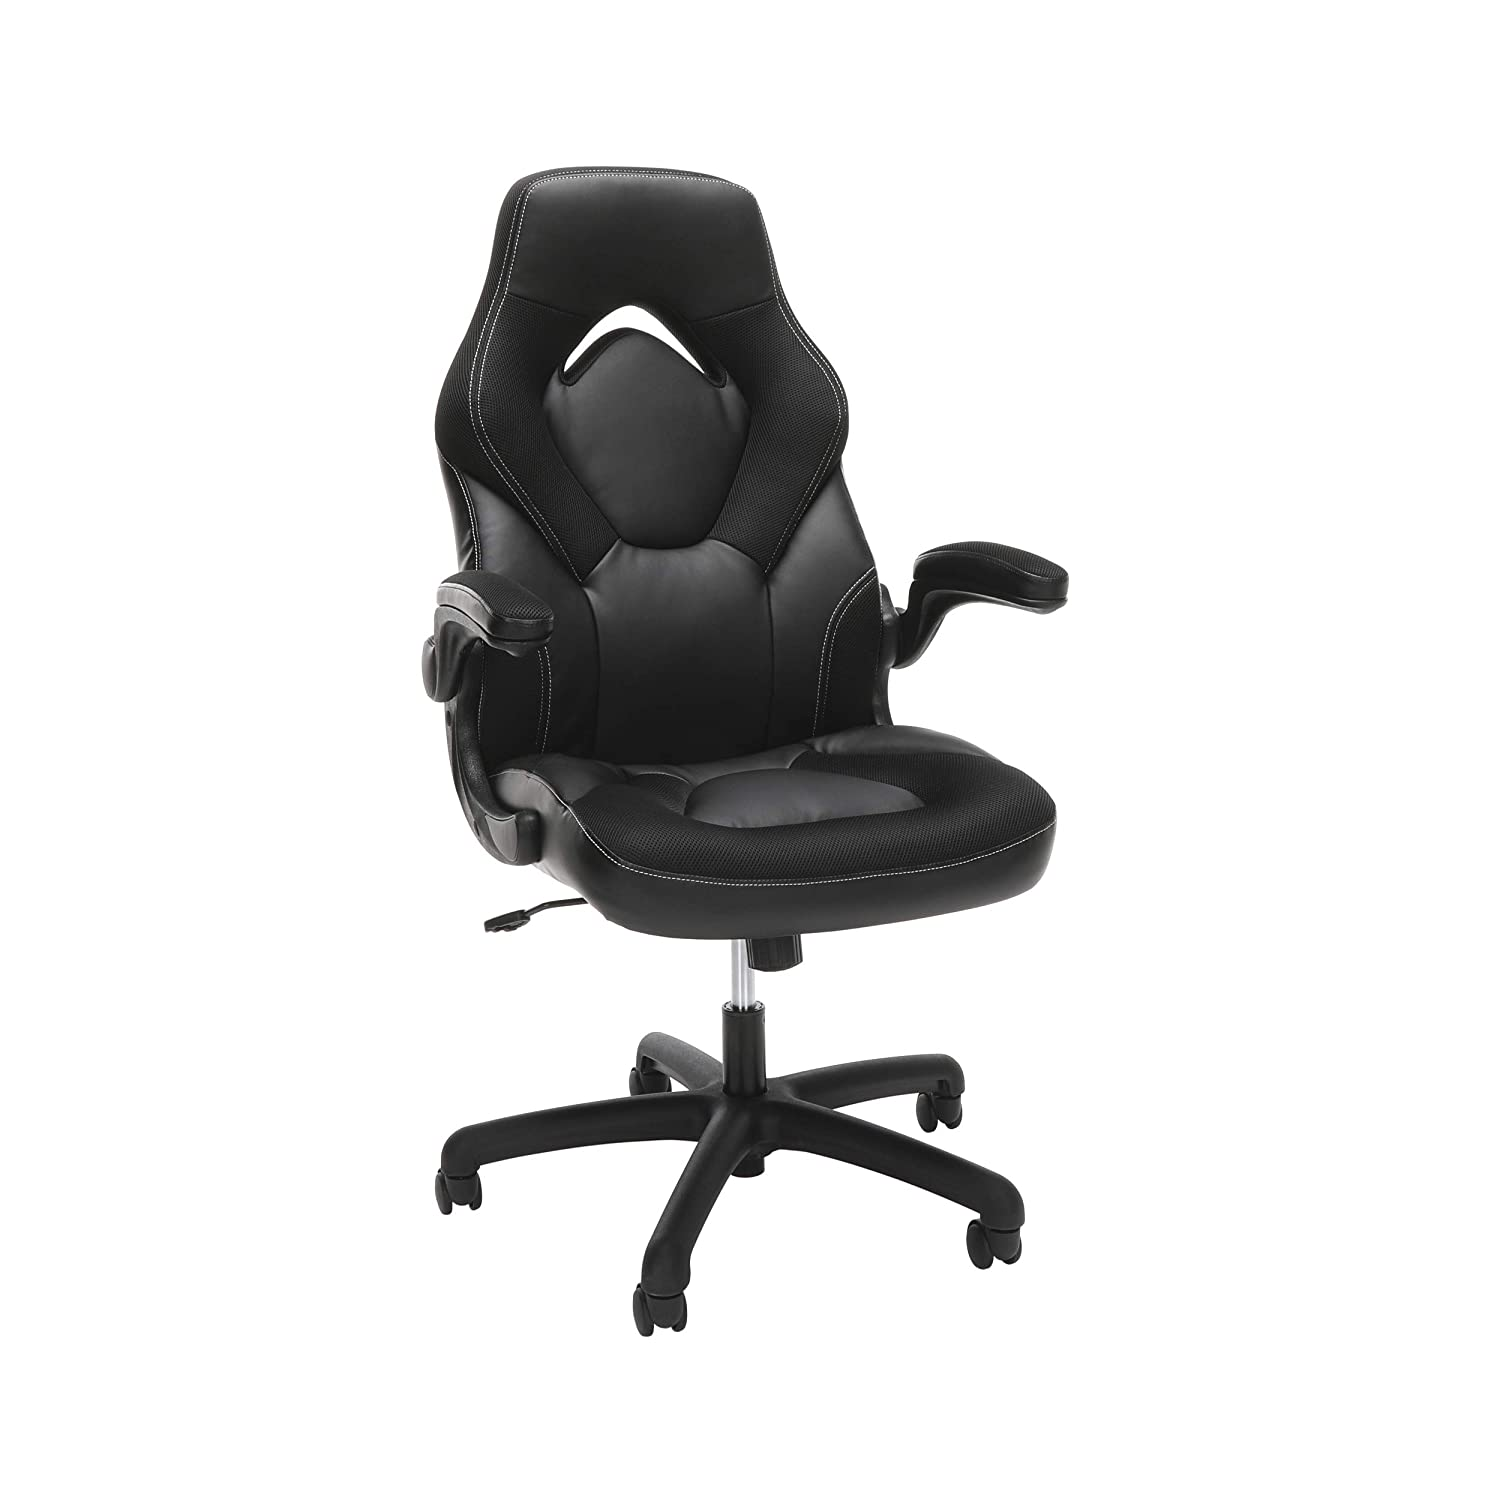 Essentials Racing Gaming Chair Review